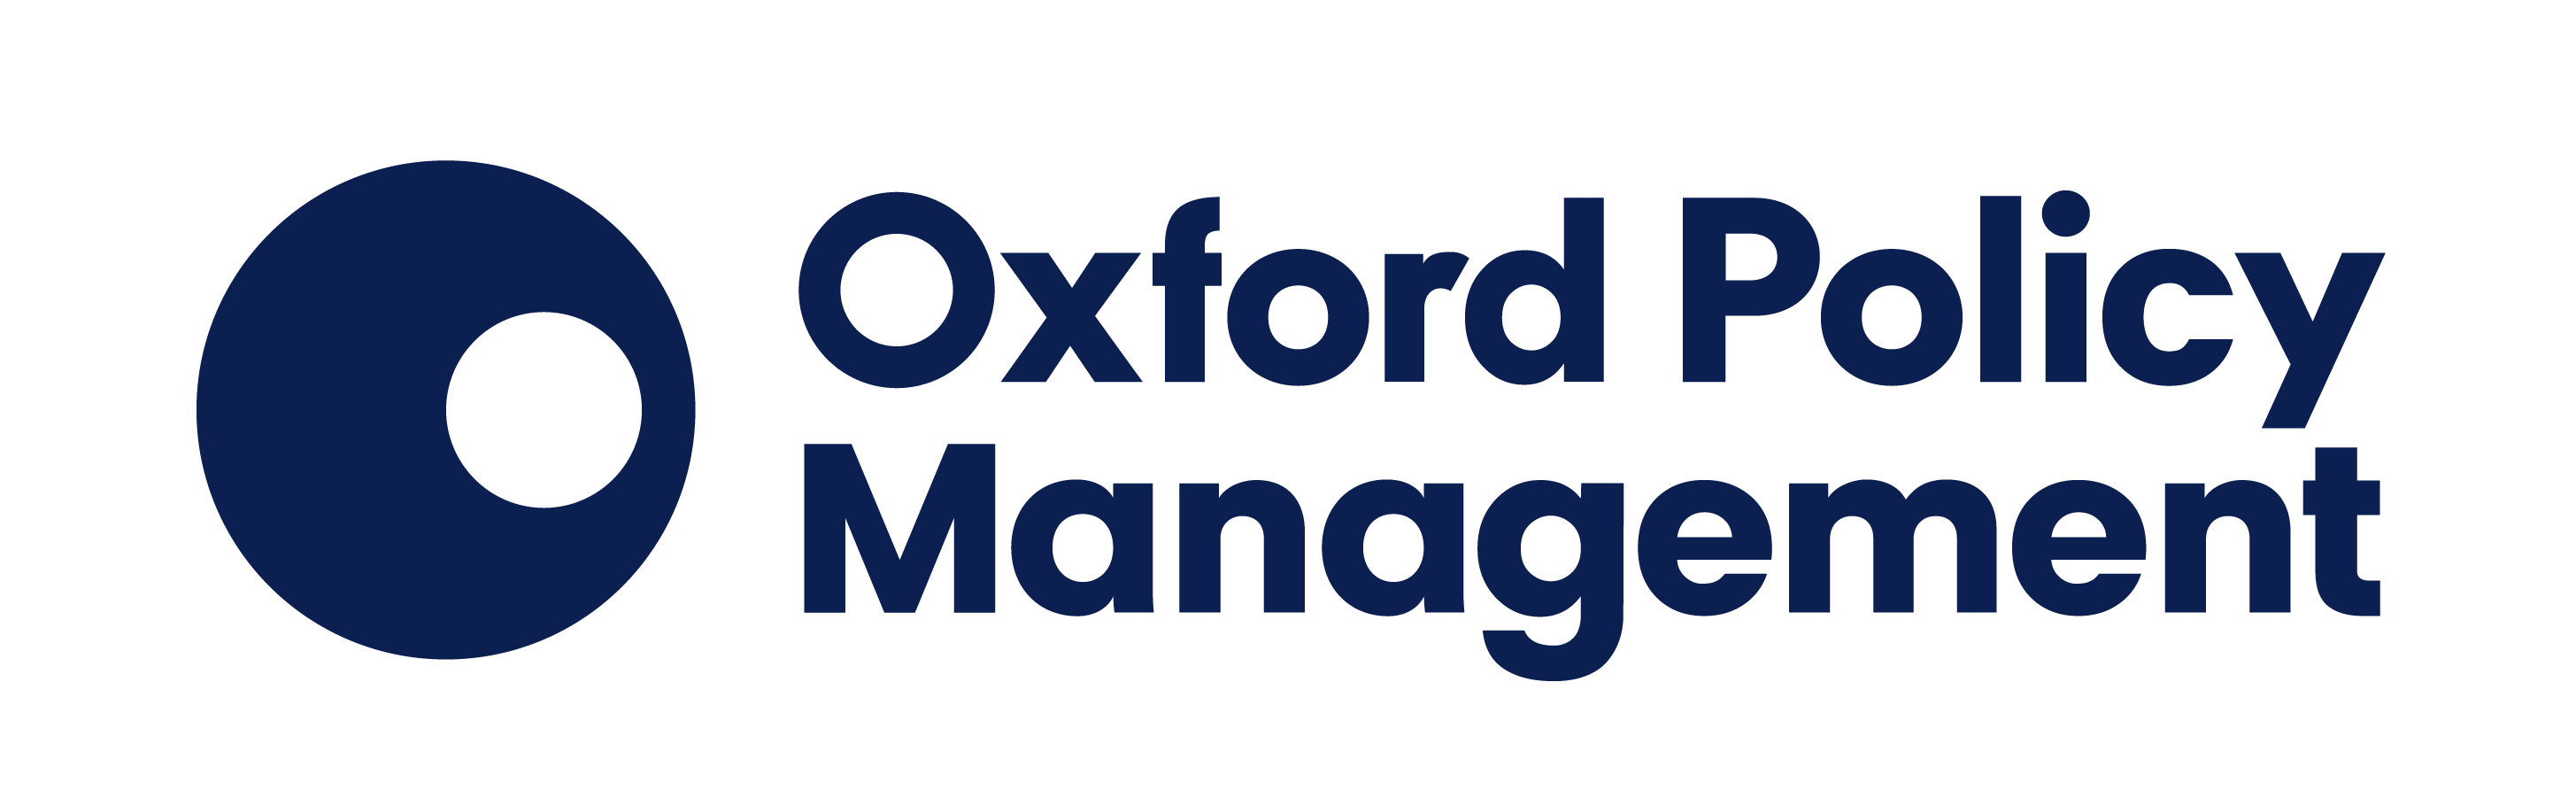 Image result for oxford policy management